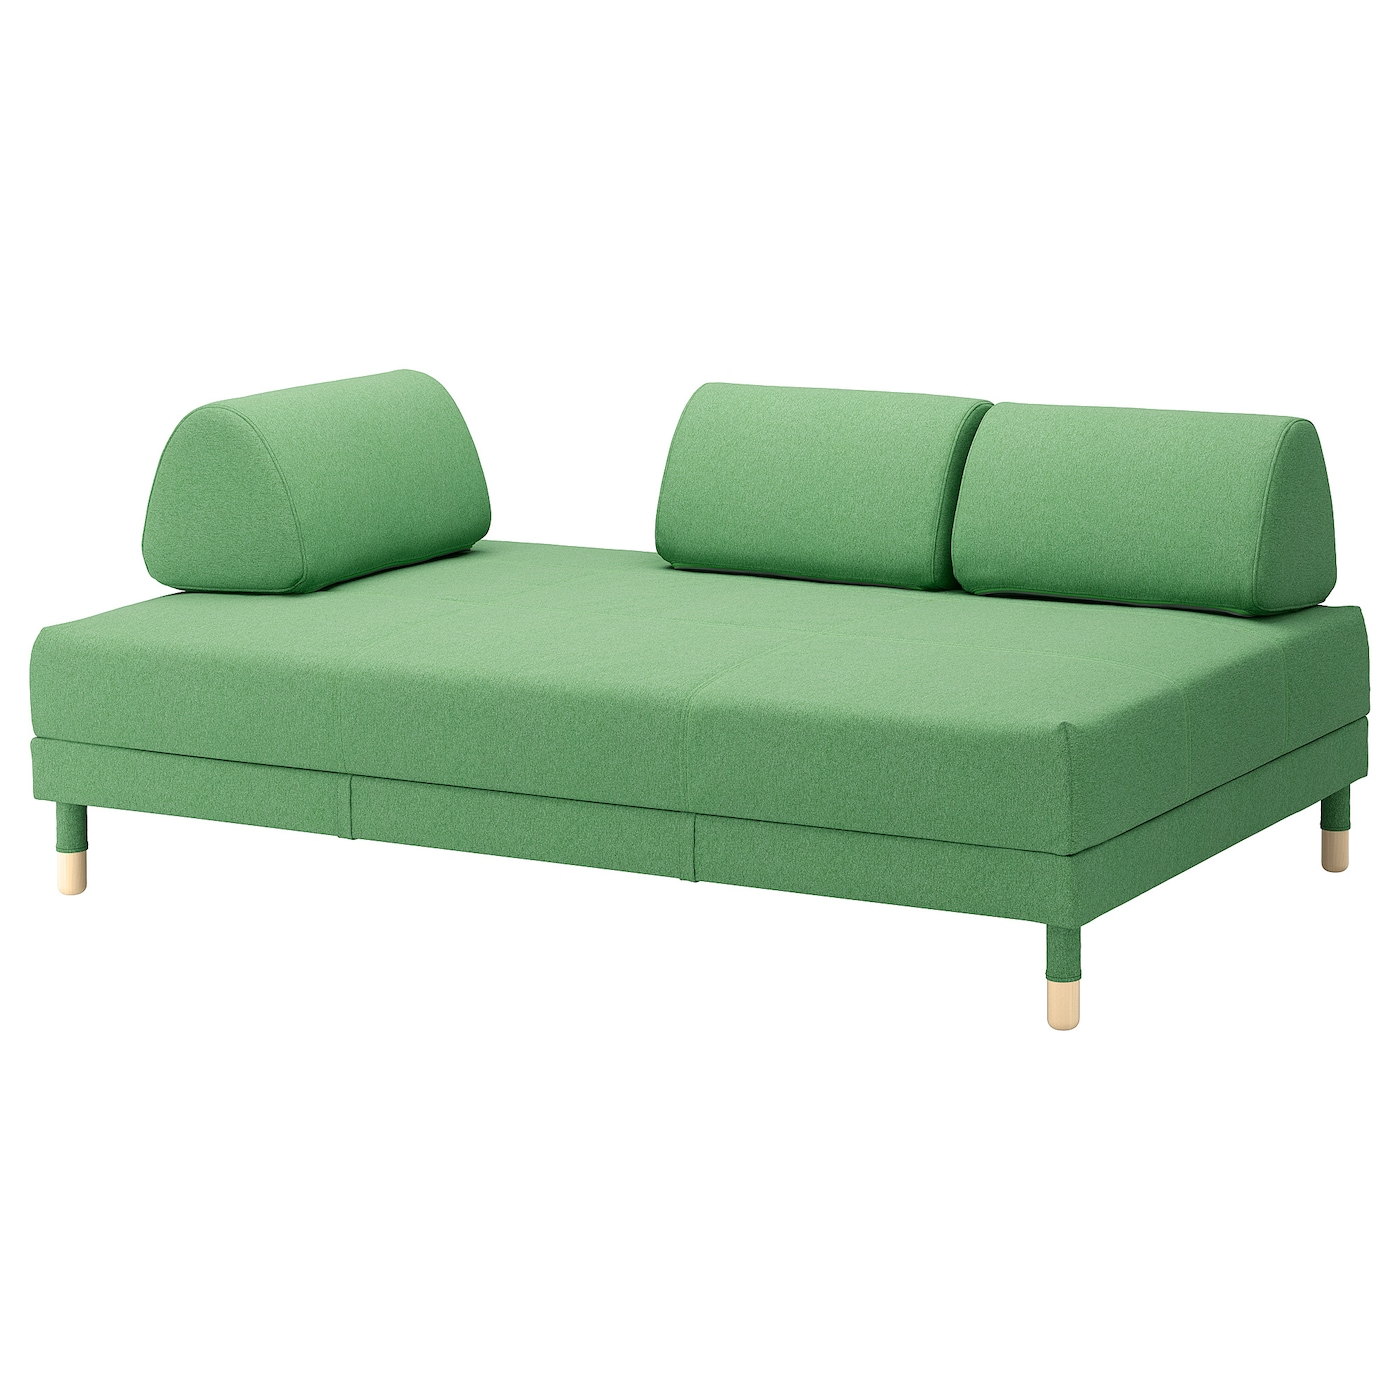 flottebo sofa bed lysed green 120 cm ikea rh ikea com Sofa Beds for Small Spaces ikea fabric sofa bed